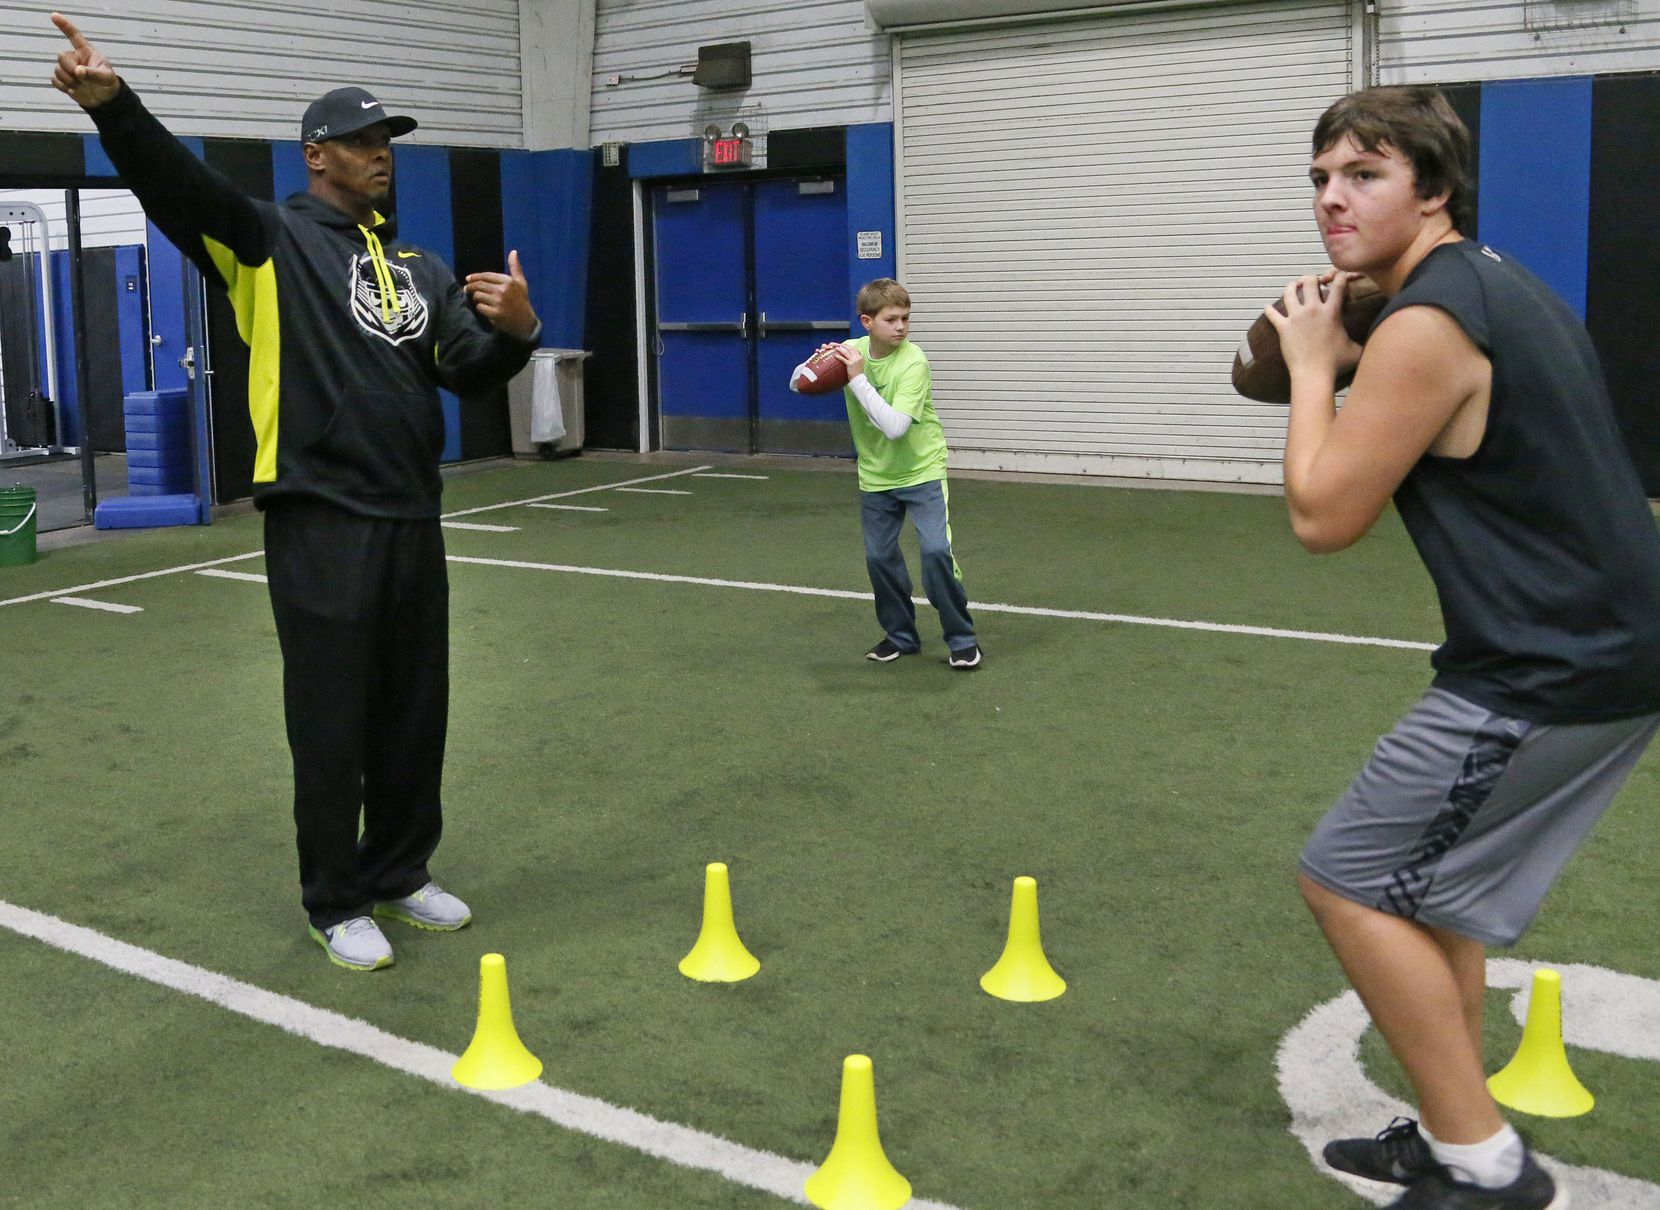 Former Texas A&M quarterback Kevin Murray works as a quarterbacks coach with 16-year-old Zach Gibson, right, and 11-year-old Dylan Gibson at Plano West High School in Plano on Wednesday, November 13, 2013.